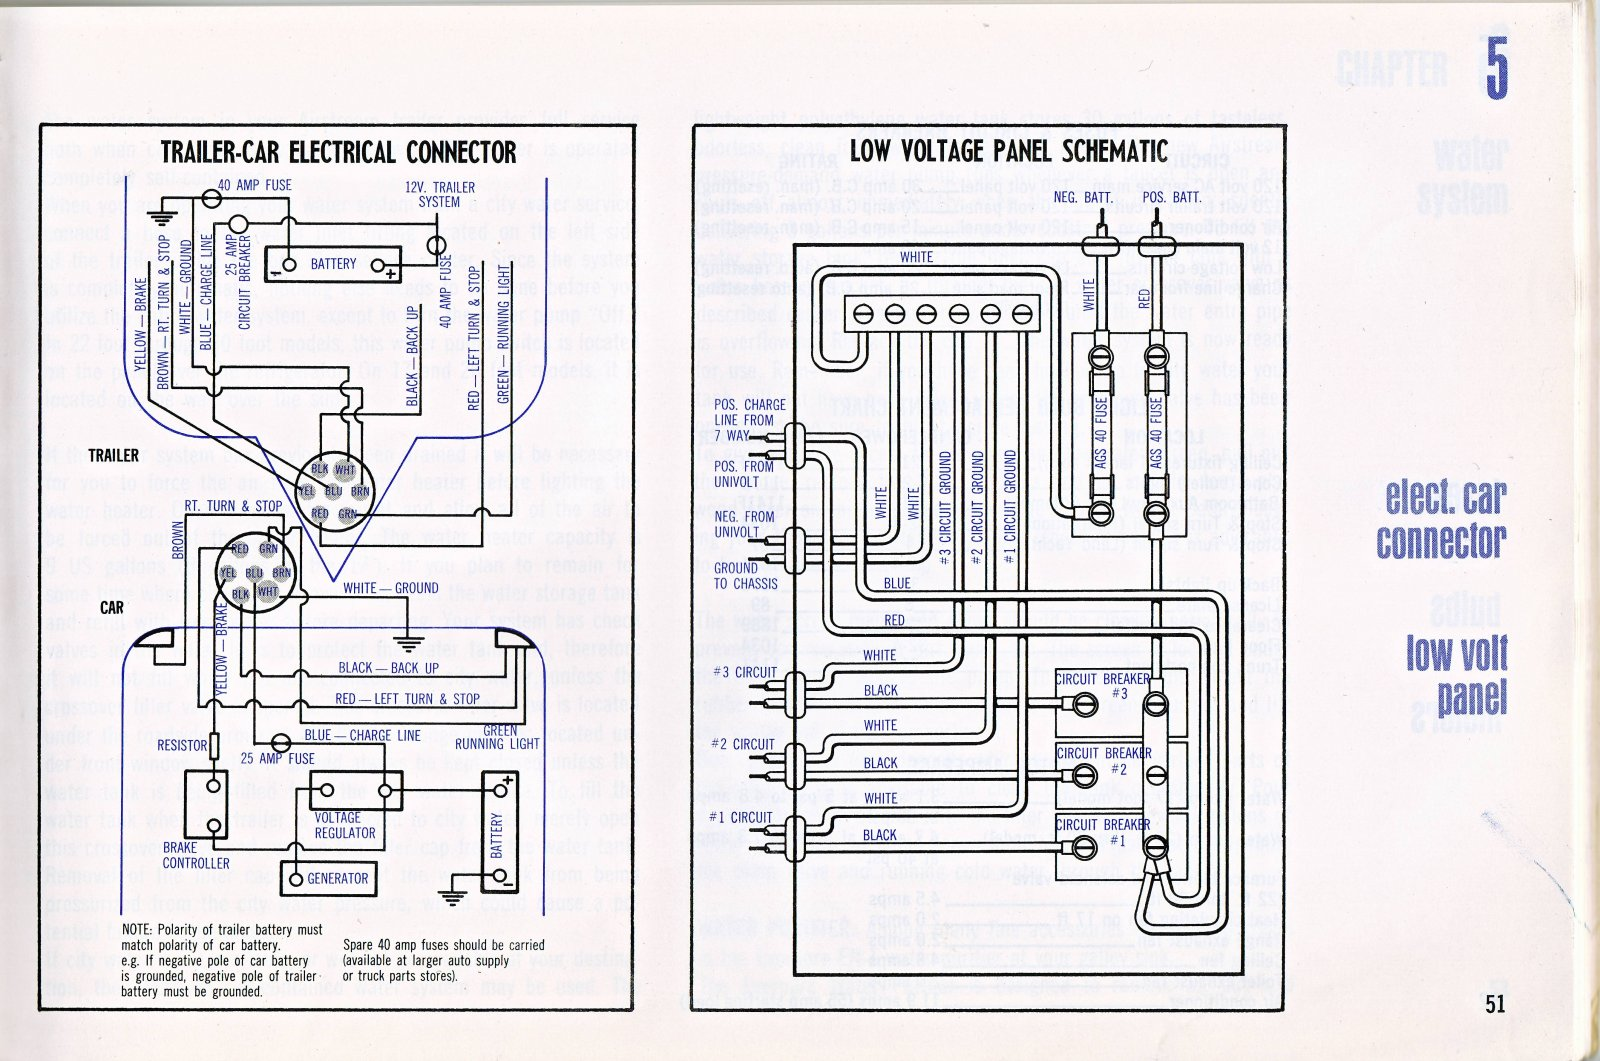 [TBQL_4184]  DIAGRAM] Vintage Airstream Globetrotter Wiring Diagram FULL Version HD  Quality Wiring Diagram -  LZ1AQSCHEMATIC1482.CONCESSIONARIABELOGISENIGALLIA.IT | Land Rv Wiring Diagram |  | concessionariabelogisenigallia.it